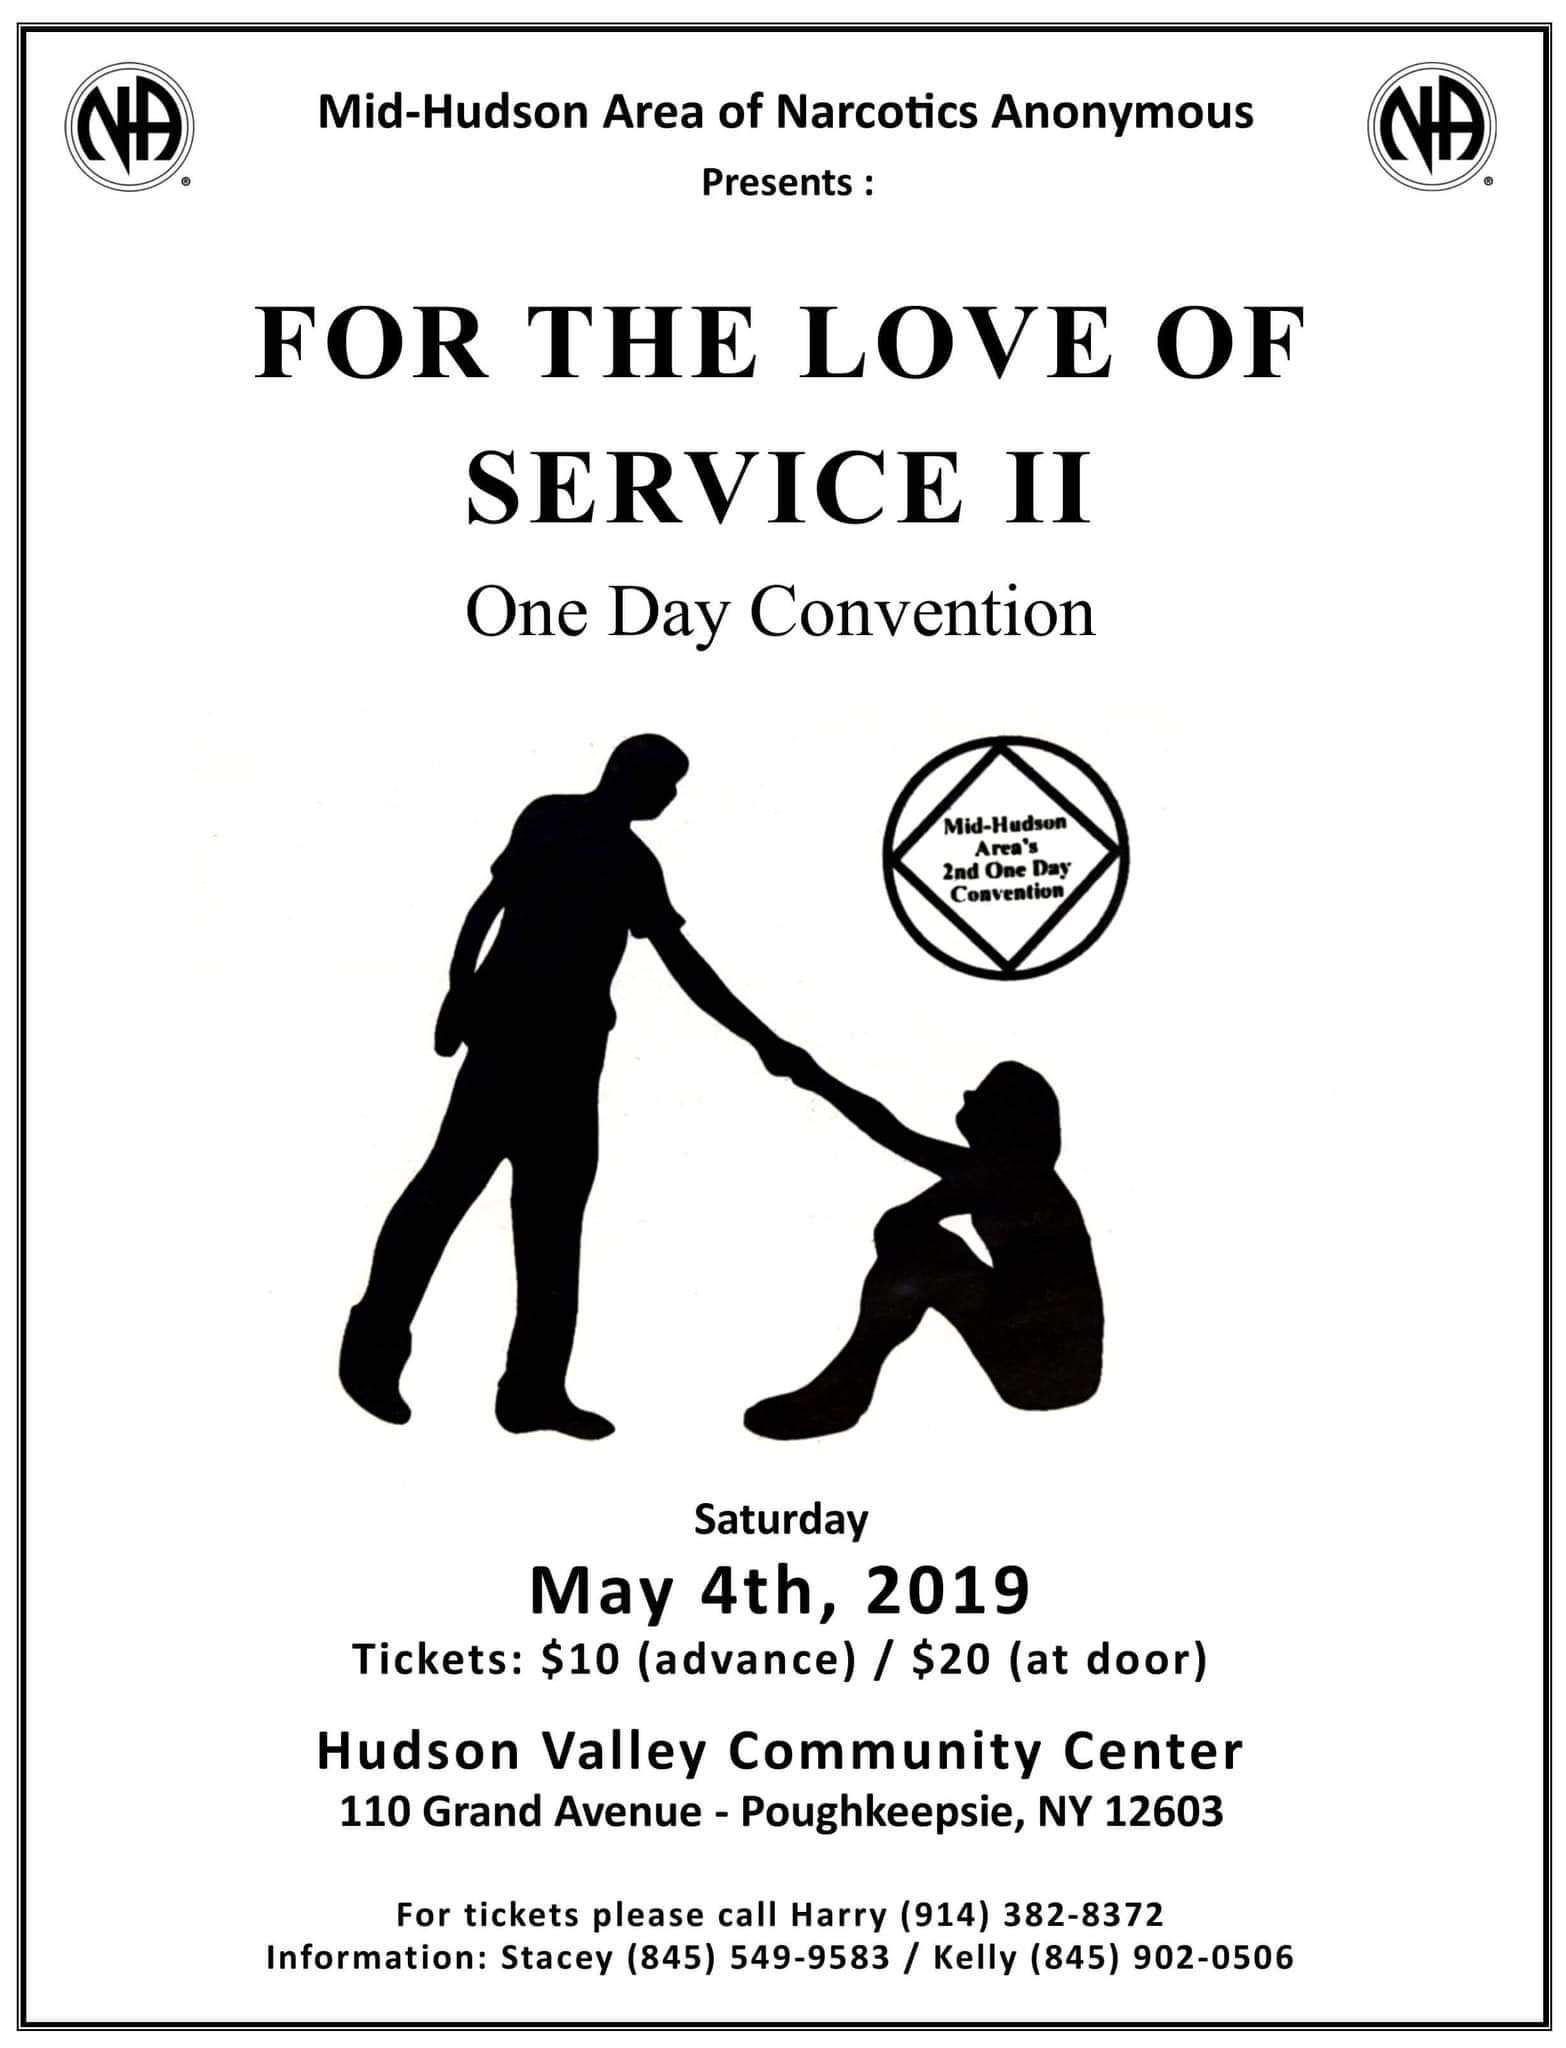 For the Love of Service 2 - One Day Convention @ Hudson Valley Community Center | Poughkeepsie | New York | United States